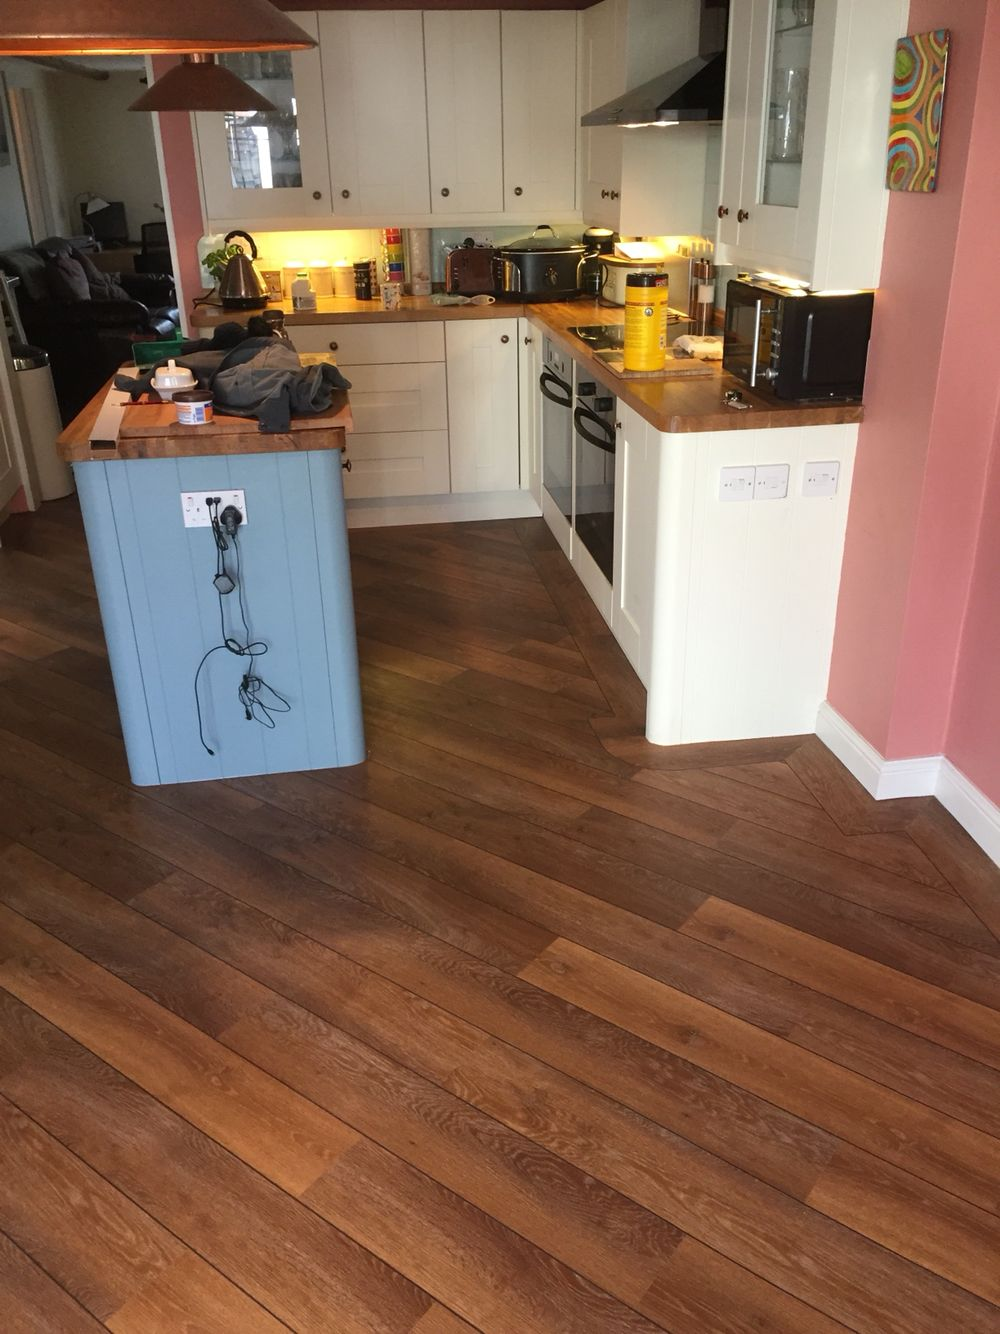 kitchen karndean flooring luxury vinyl tile karndean flooring floor design on kitchen remodel vinyl flooring id=52974